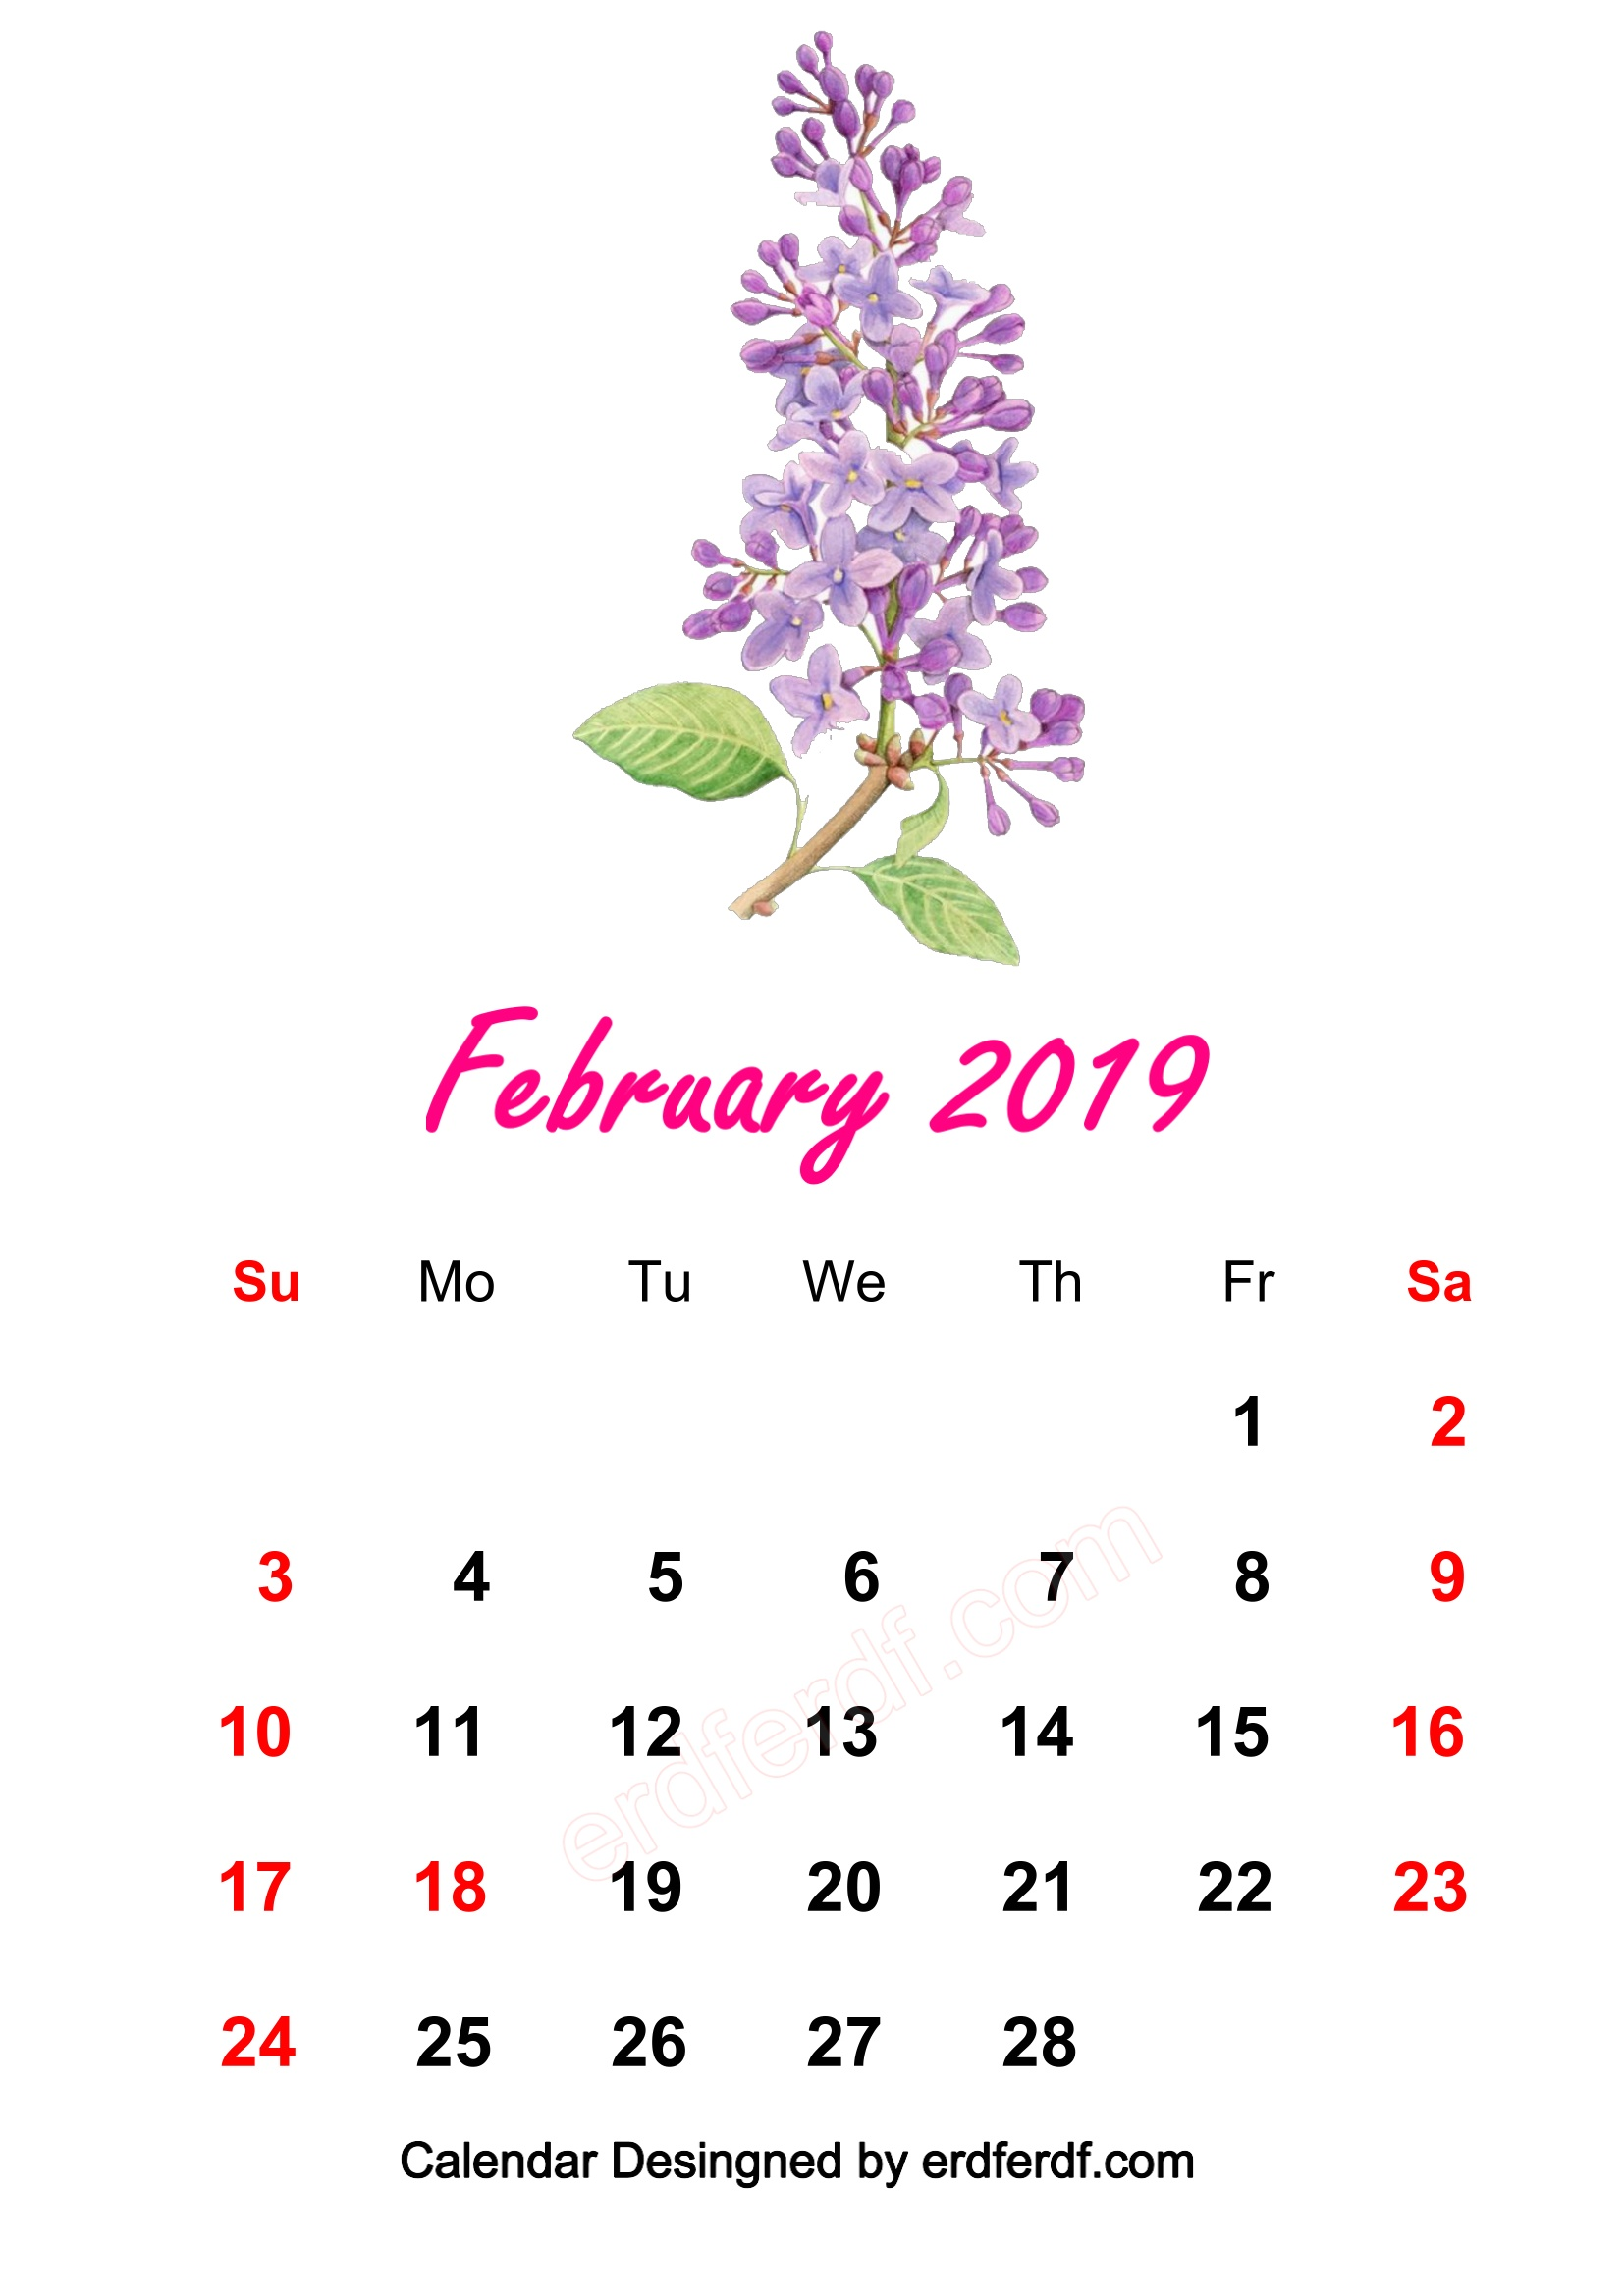 7 February 2019 HD Calendar Wallpapers Prety WaterColor